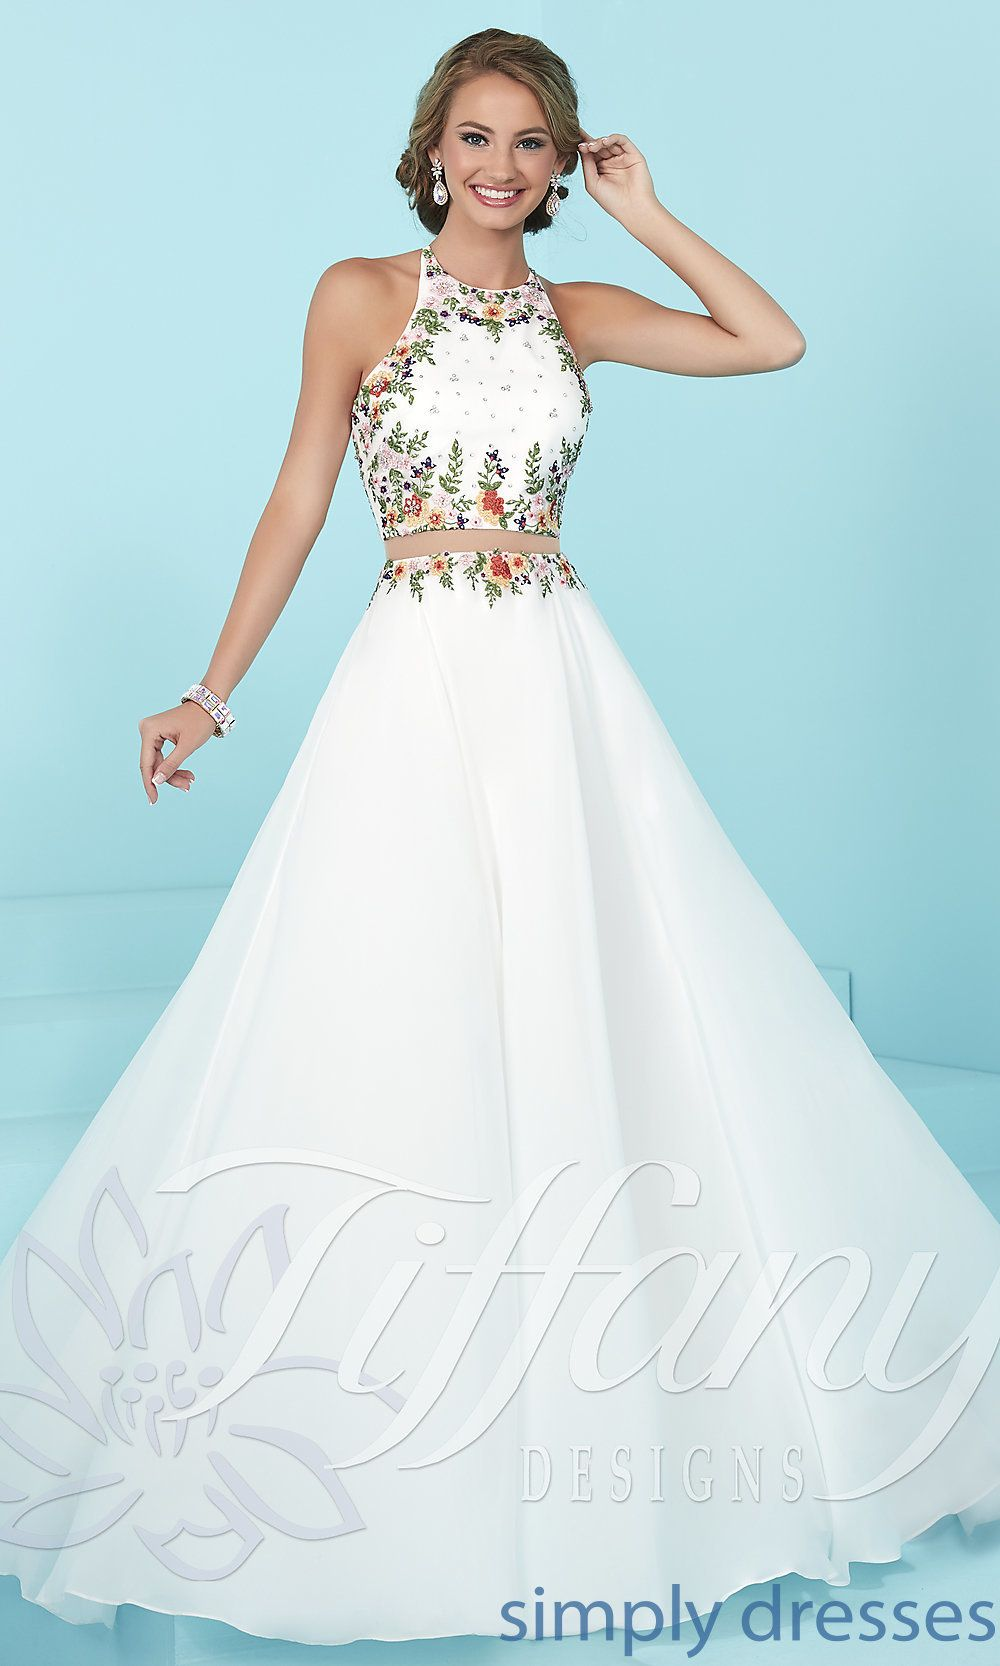 56ca1f46e7 Shop for sleeveless a-line mock two-piece prom dresses at PromGirl. 2017  designer prom dresses with embroidered tops and long full skirts.